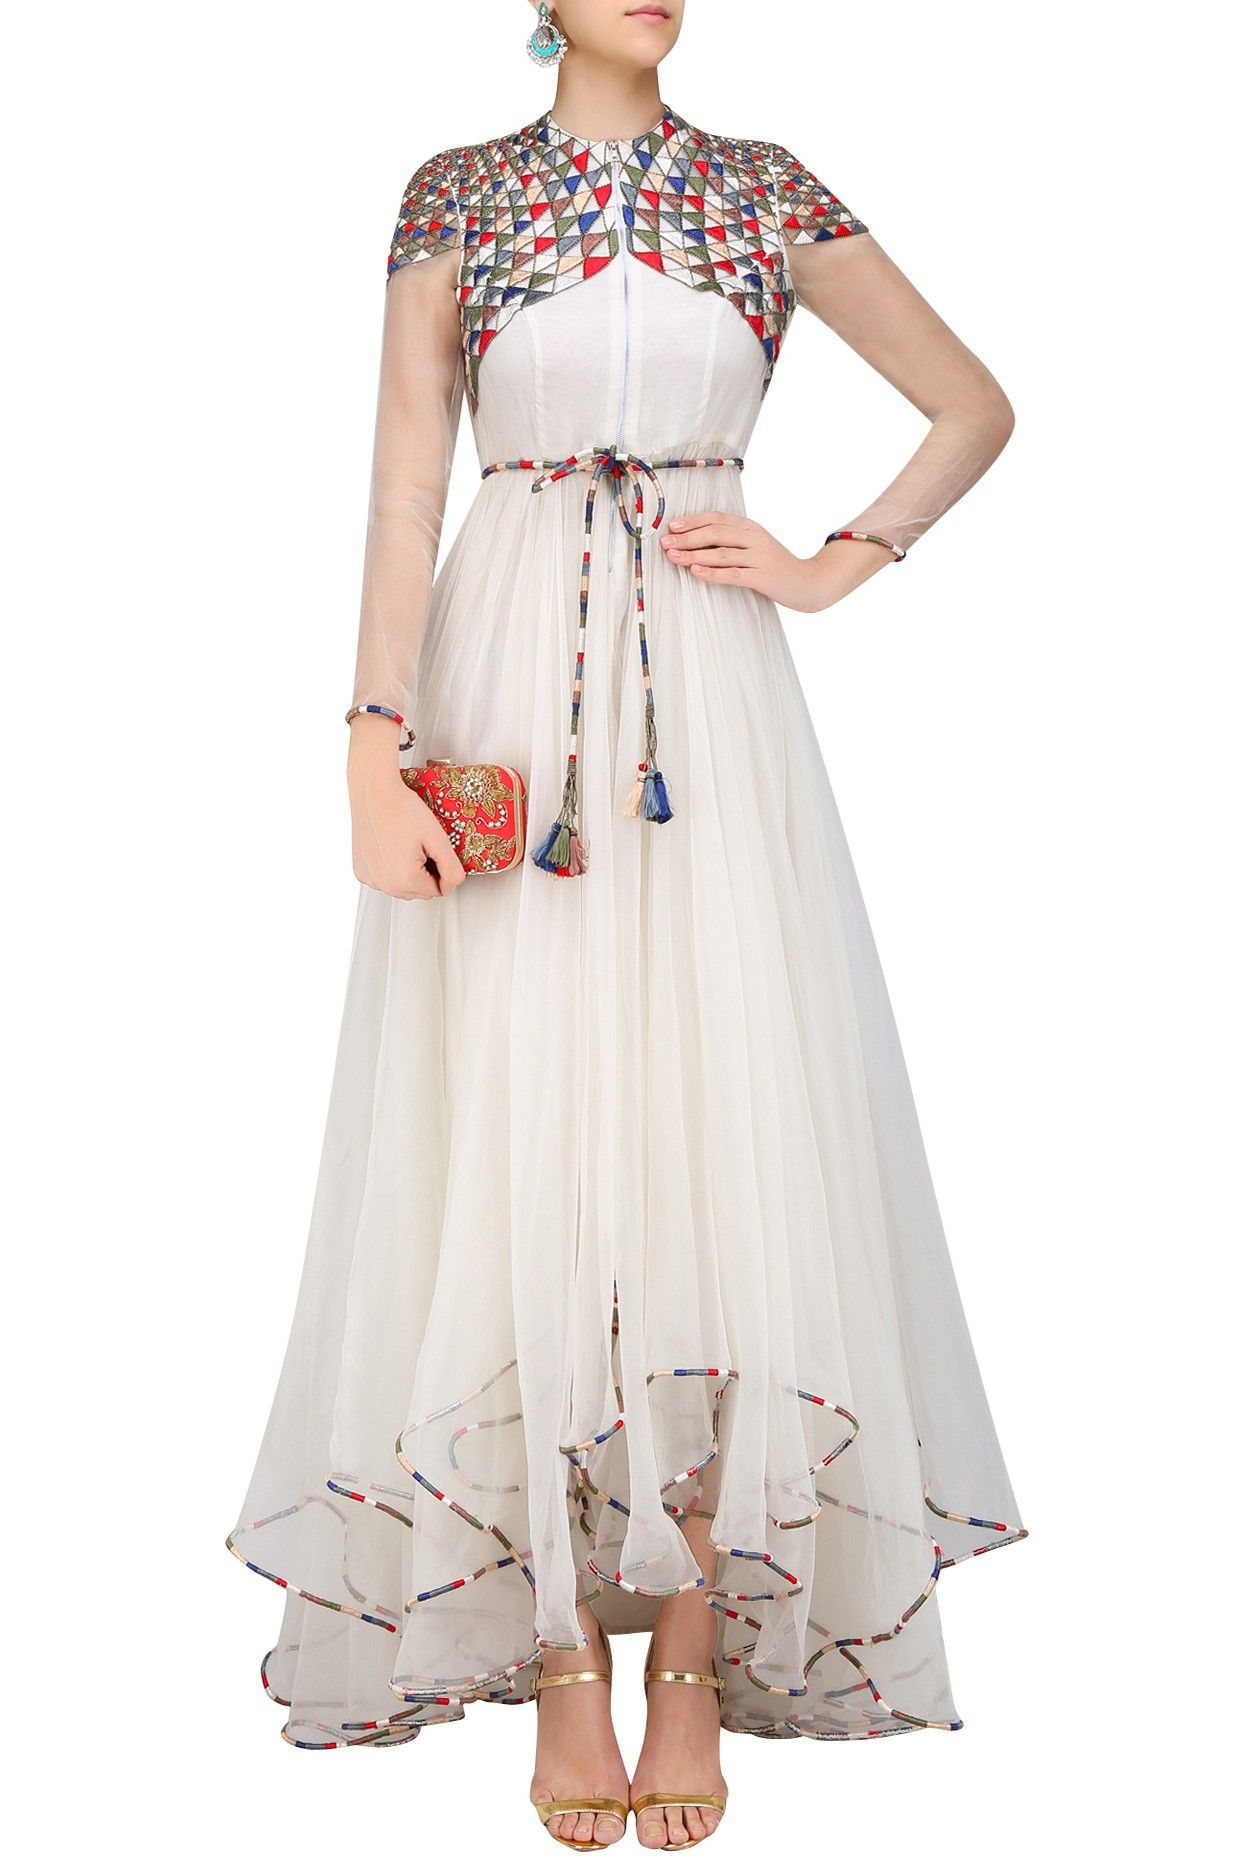 533836d40b6 White Geometric Pattern Embroidered High Low Trail Cut Dress ...